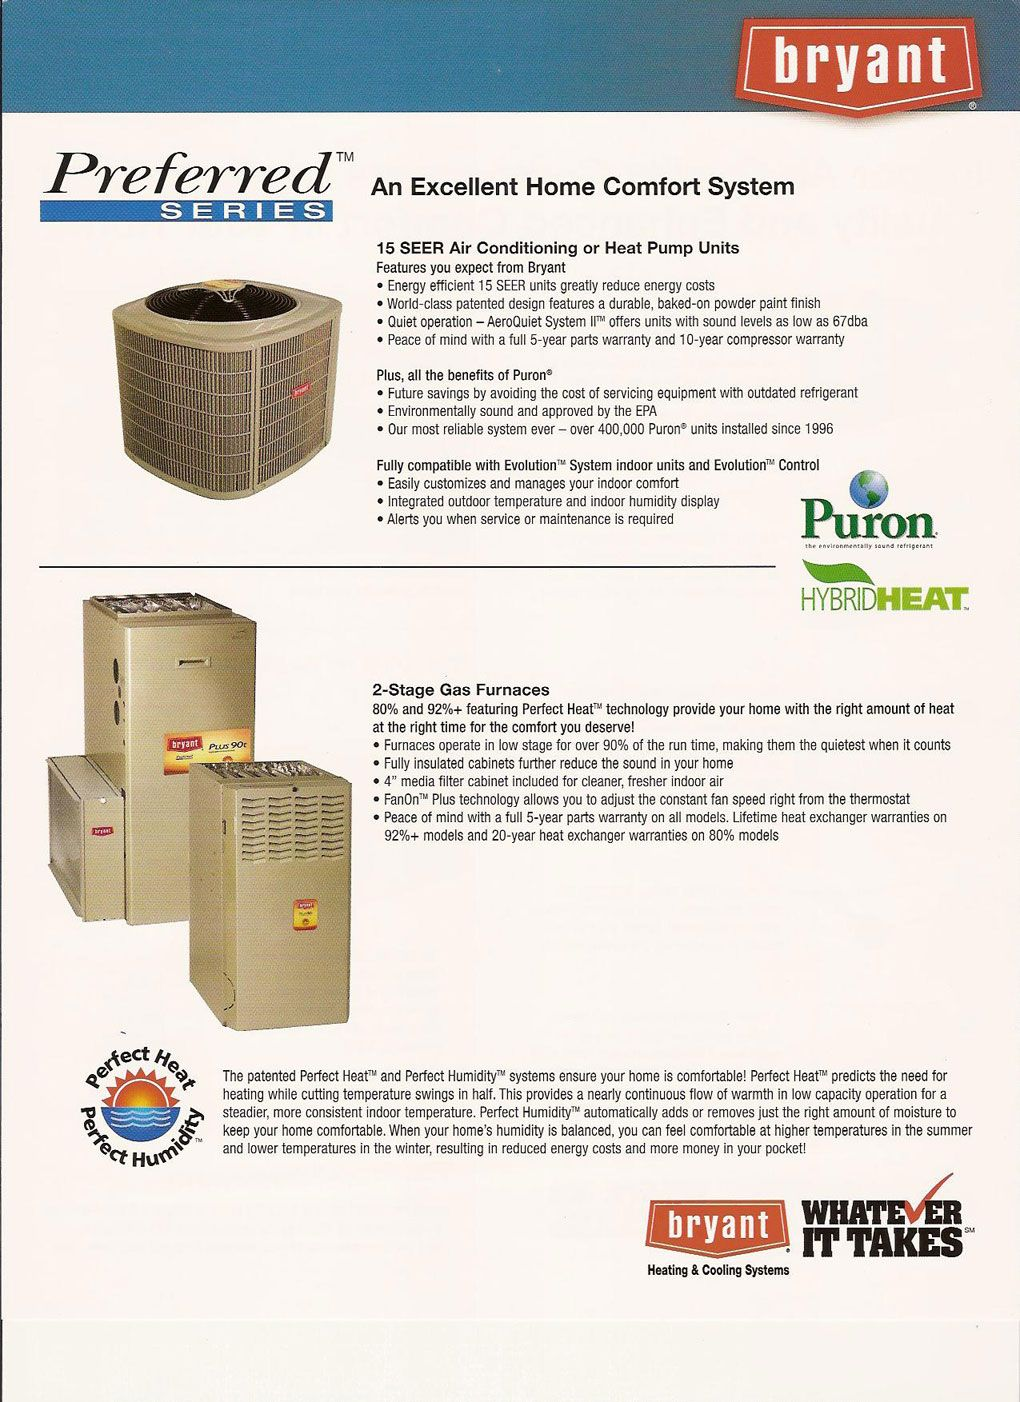 Better Bryant Products Heat Pump Unit Residential Hvac